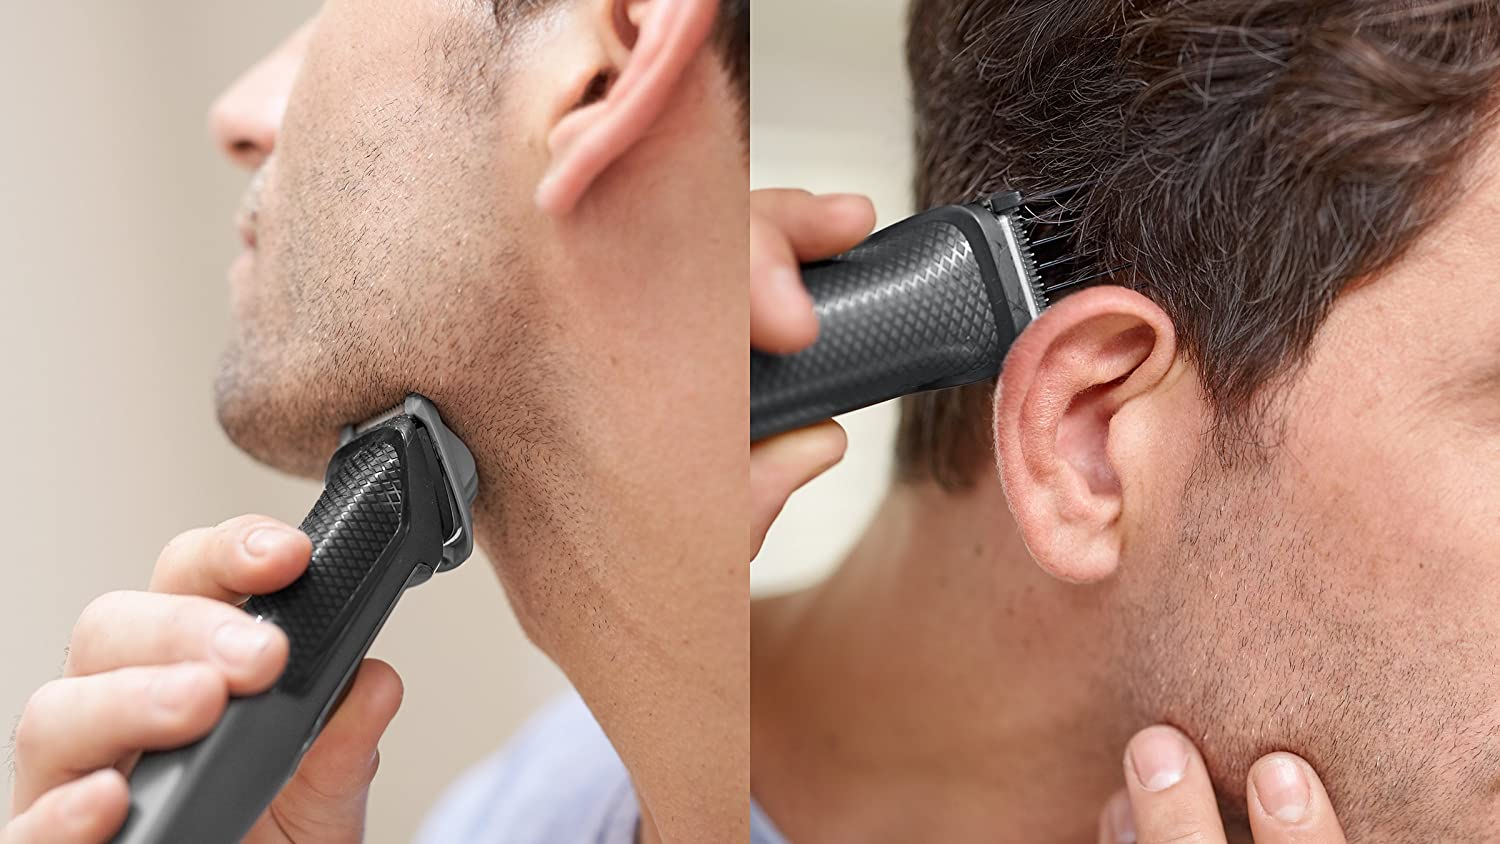 Philips Series 3000 7-in-1 Multi Grooming Kit for Beard & Hair with Nose Trimmer Attachment - MG3720/13 enlarge